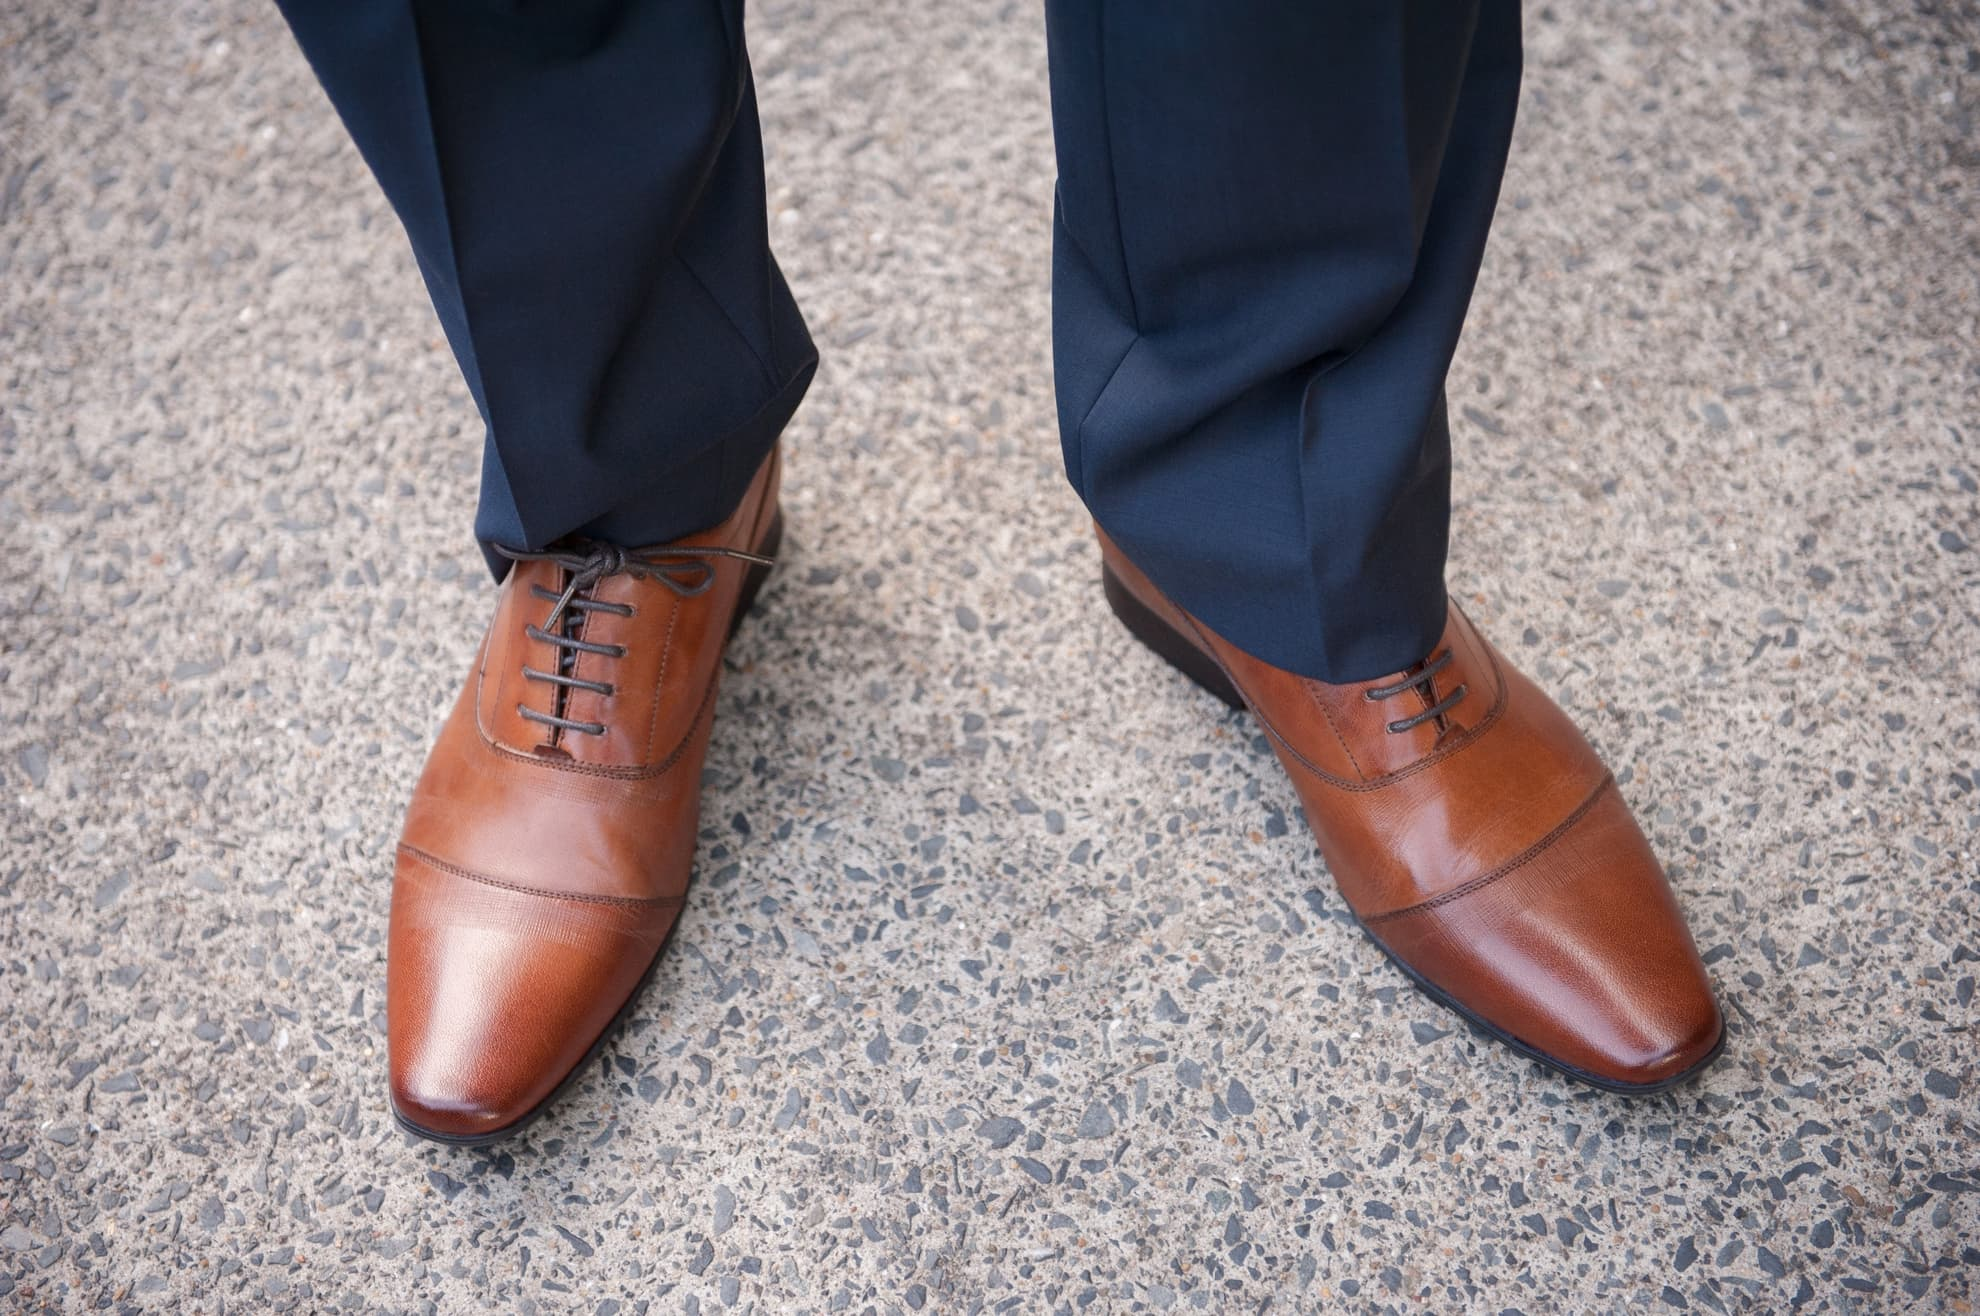 grooms-shoes-looking-smart